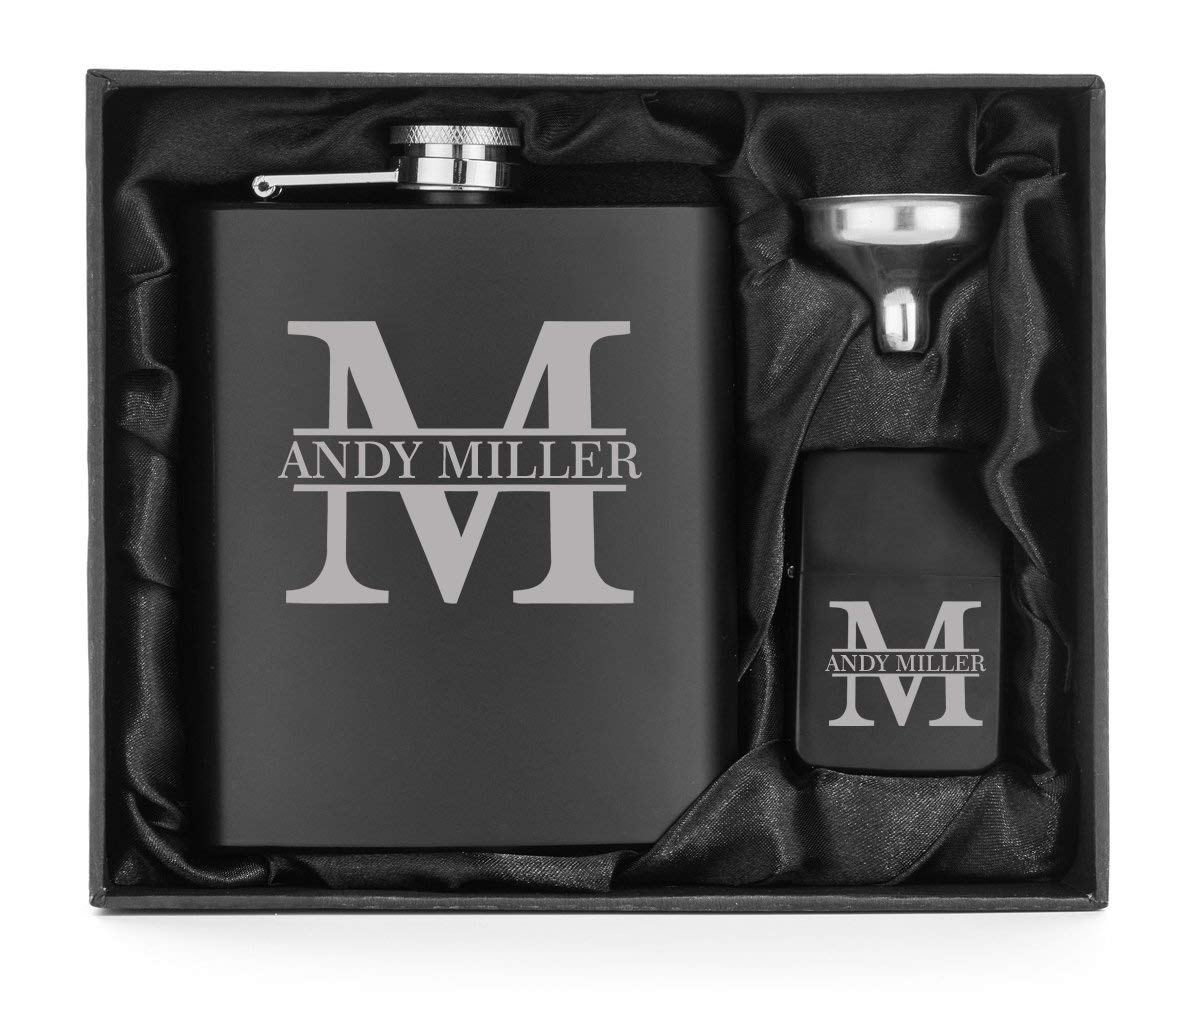 Engraved 7oz Matte Black Stainless Steel Hip Flask Funnel & Lighter Block Initial Gift Box Custom Personalized